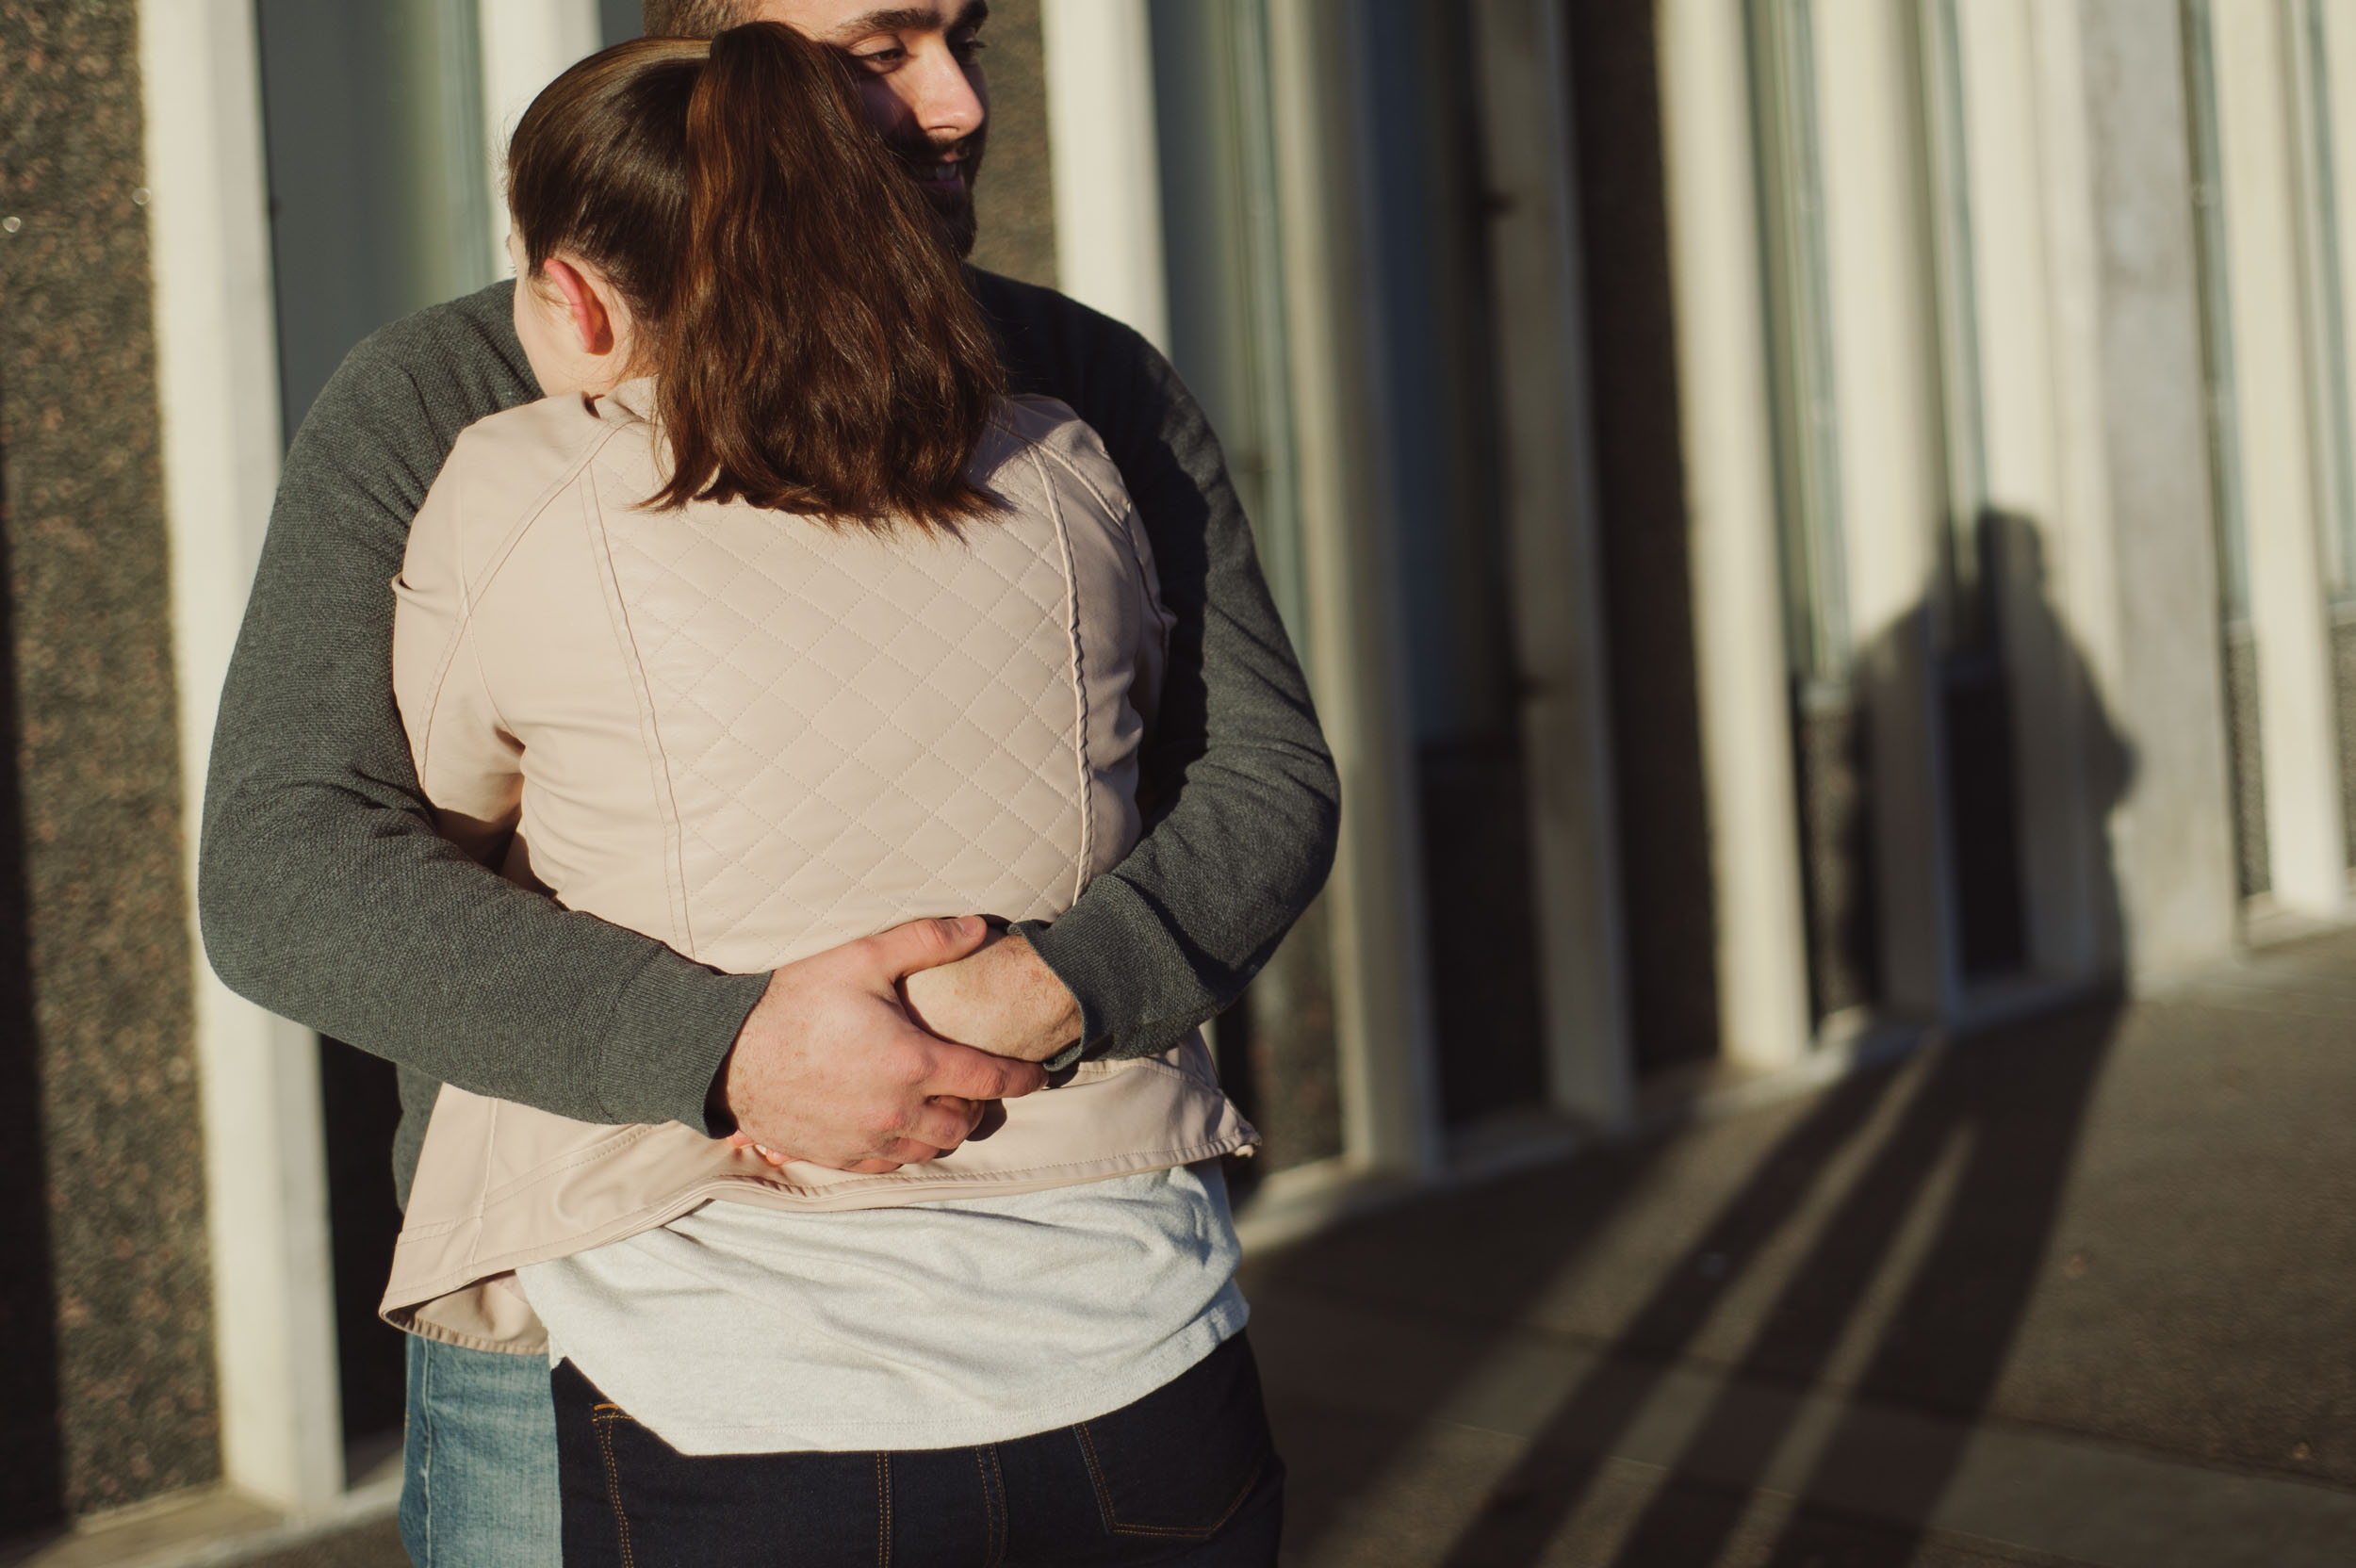 A young caucasian mand and woman embrace as the rising sun shines on them at the University of Albany campus.